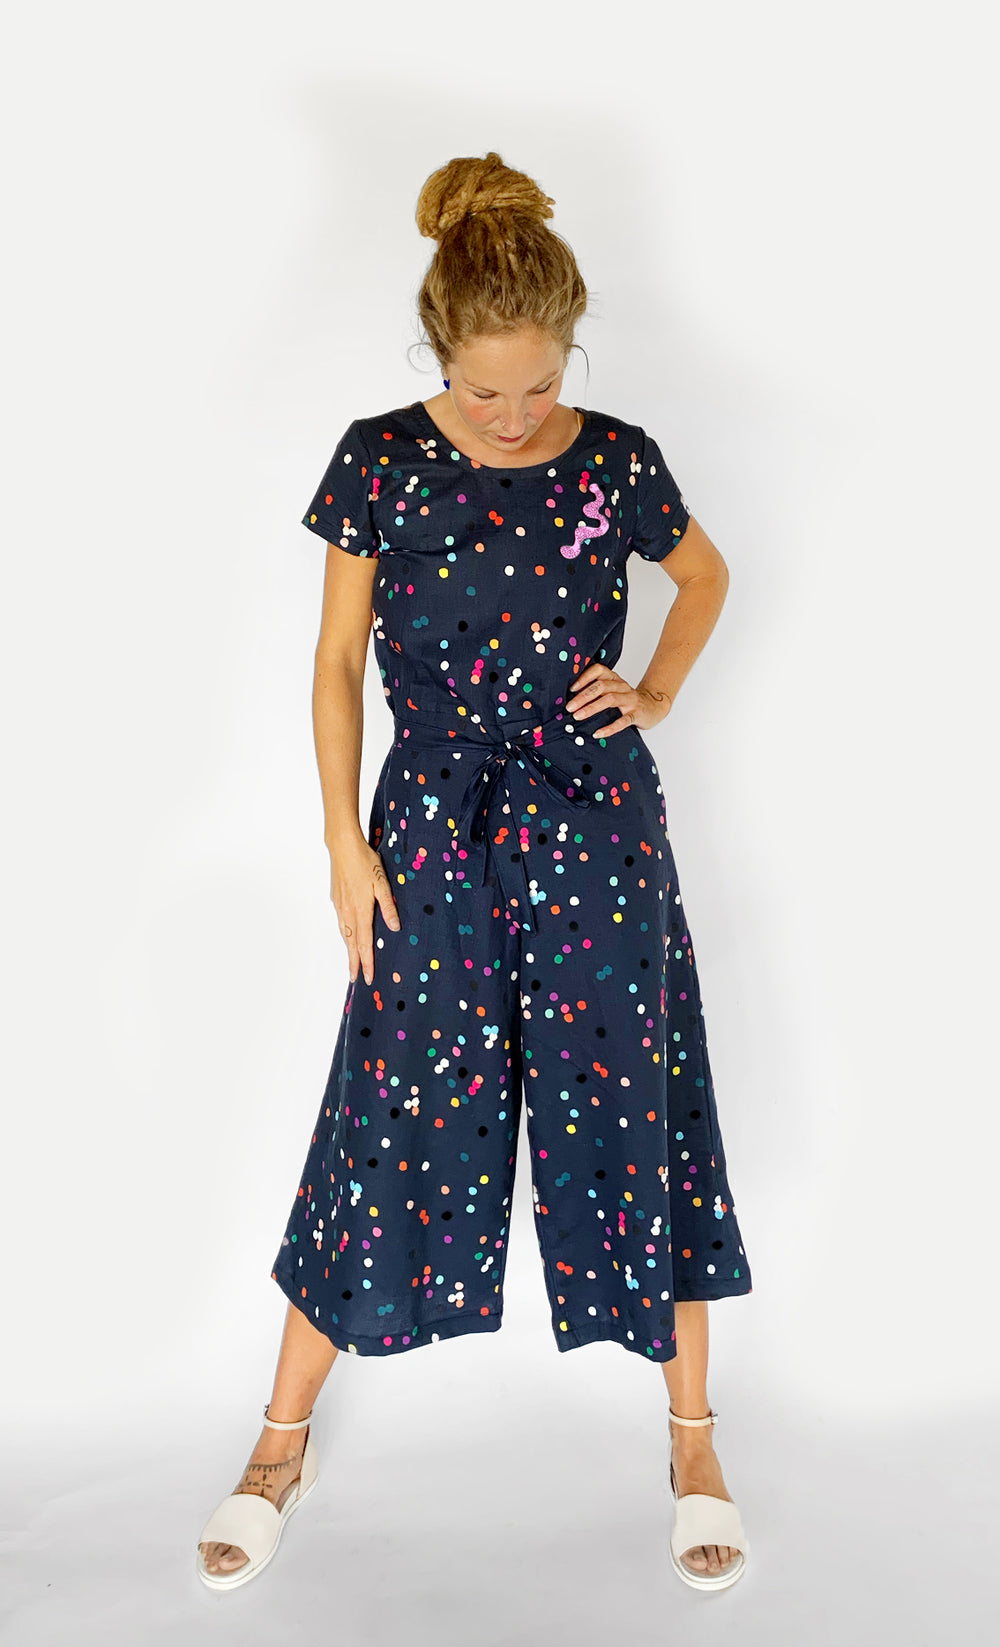 Confetti 100% linen jumpsuit (navy) with tie